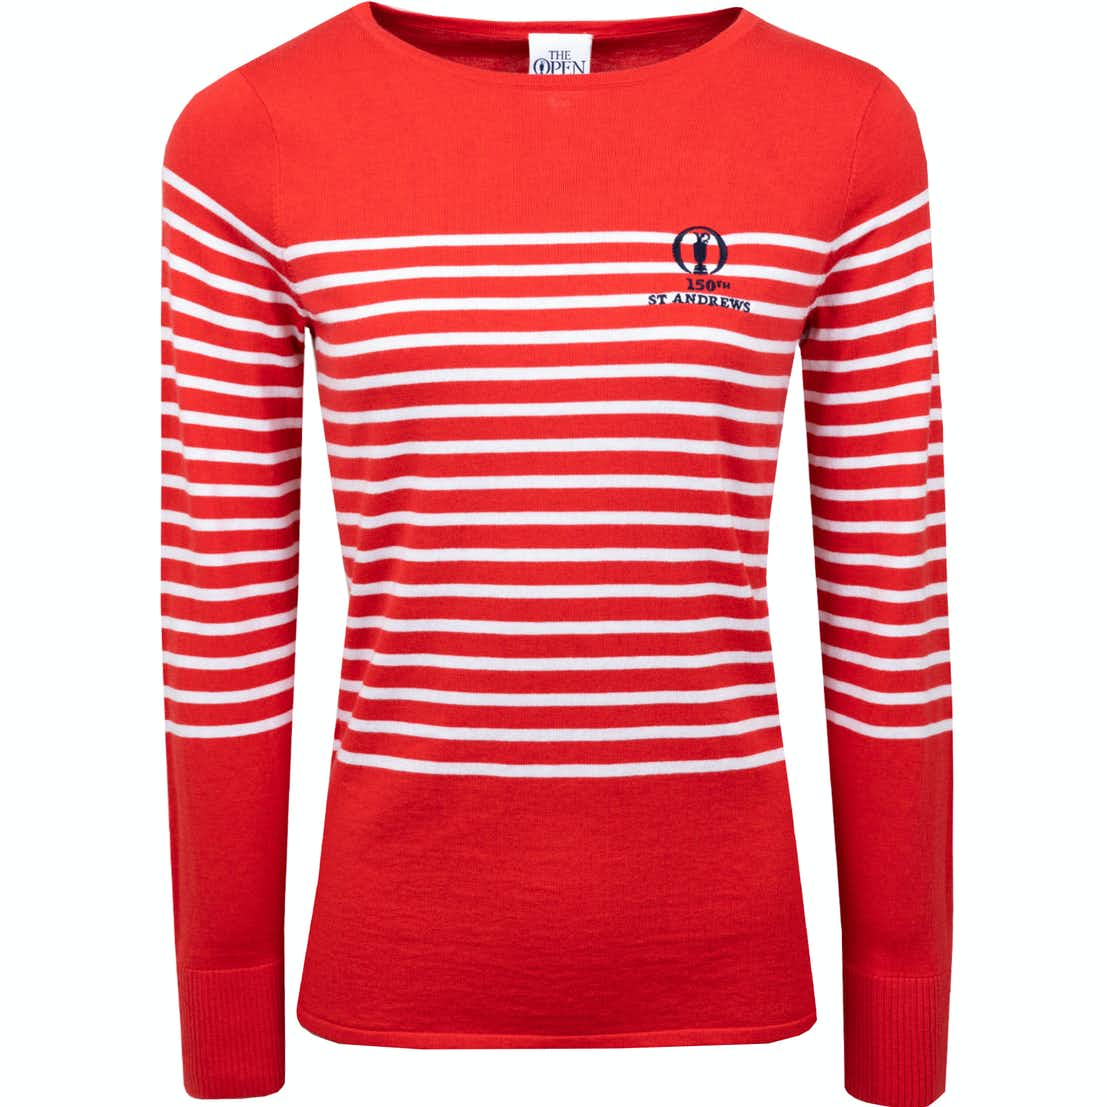 150th St Andrews Fairway & Greene Striped Sweater - Red